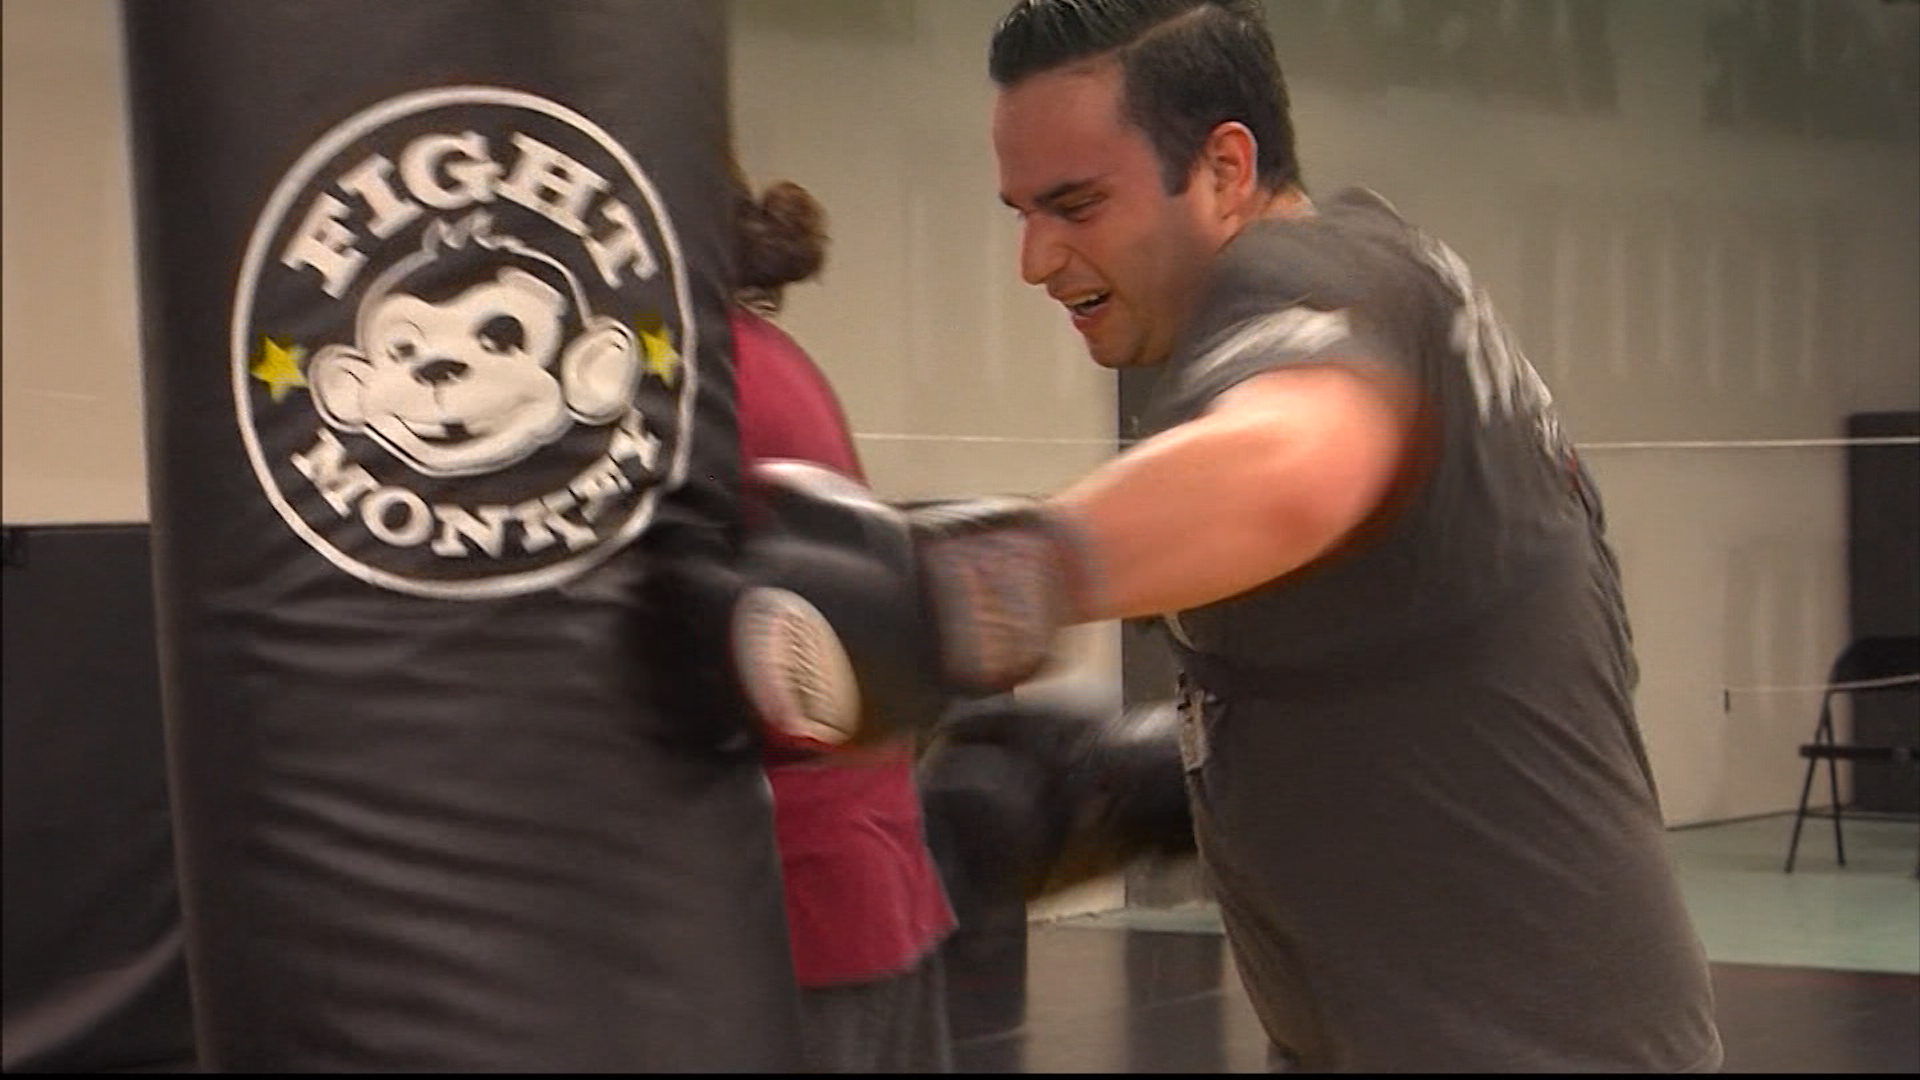 MMA Conditioning a fun way to beat the stress away